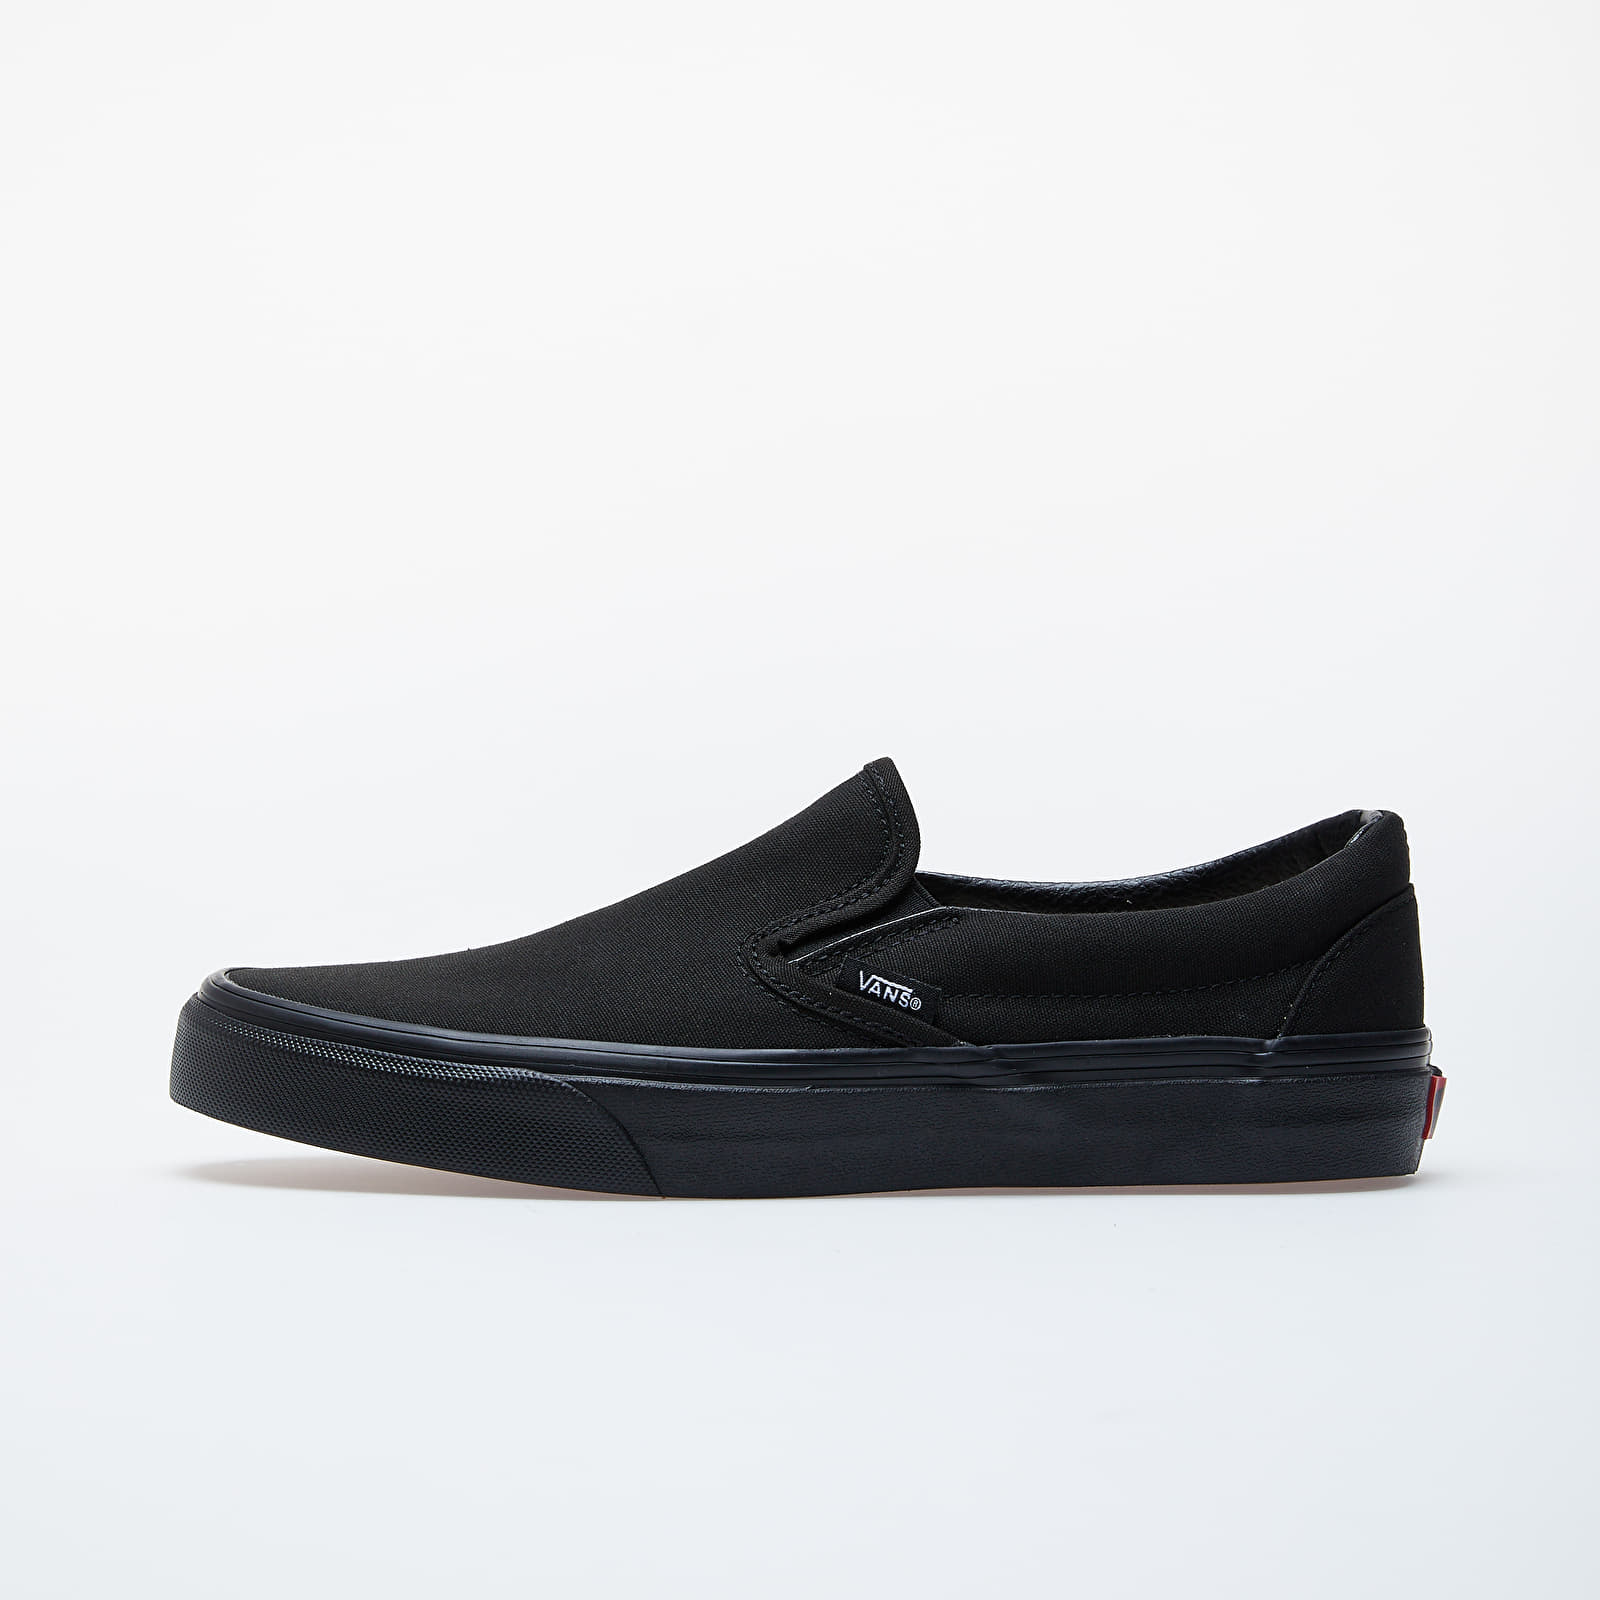 Herenschoenen Vans Classic Slip-On Black/ Black